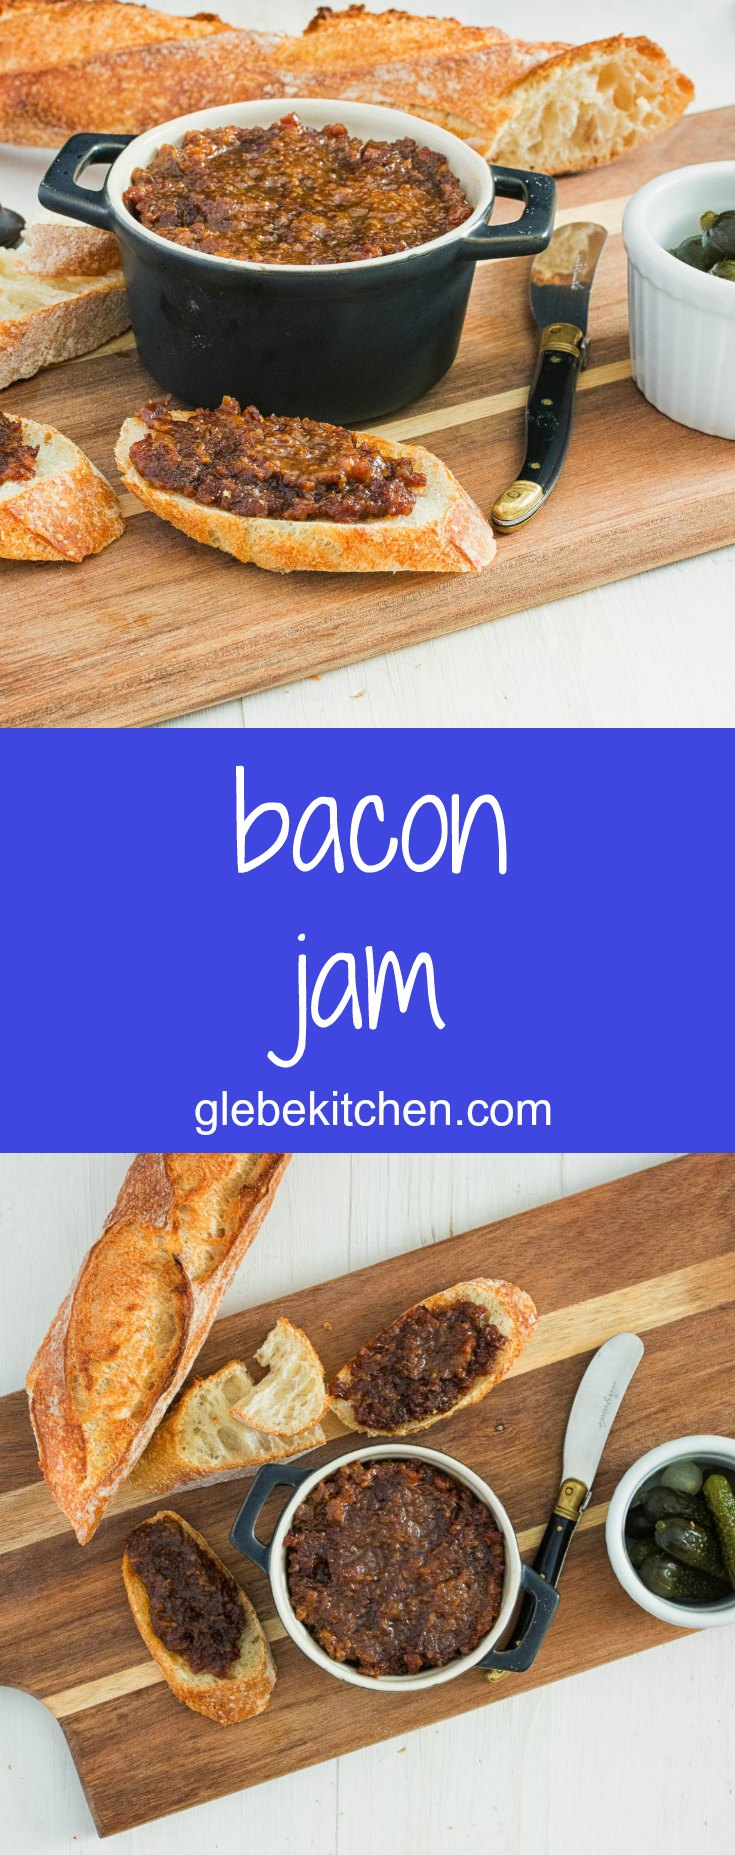 Bacon jam is a salty, sweet, savoury bacon flavour bomb. Serve it along with baguette or use it in the ultimate bacon, lettuce and tomato sandwich.